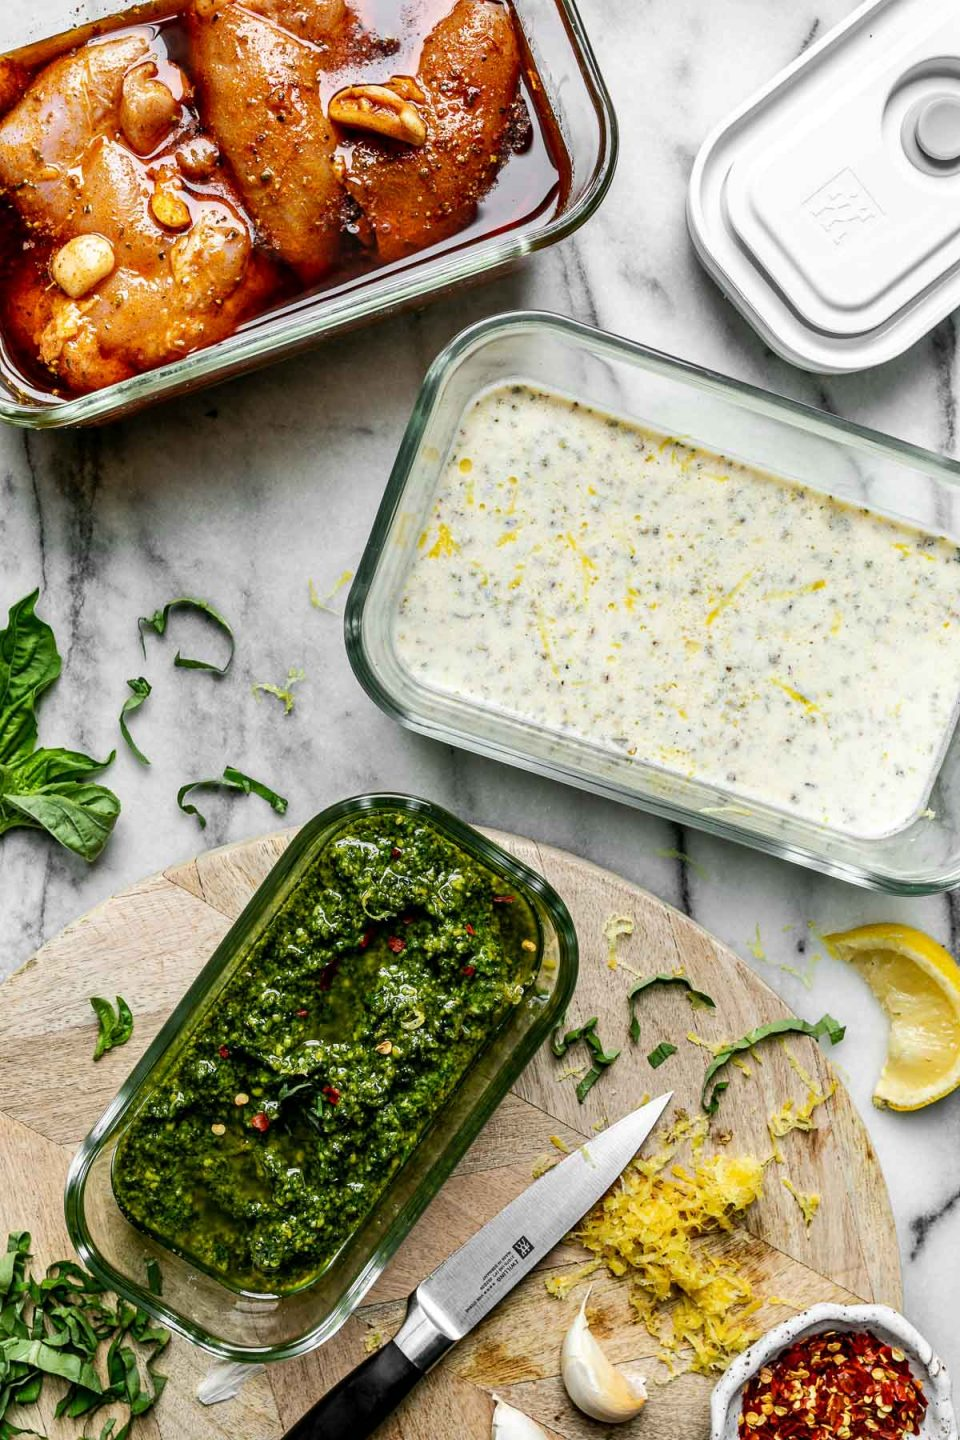 Mise en Place with Zwilling Fresh & Save. Zwilling Fresh & Save containers sit atop a white marble surface, filled with marinating chicken shawarma, Greek yogurt marinade, & fresh pesto. The containers are surrounded by fresh basil, lemon zest, garlic cloves & lemon wedges.